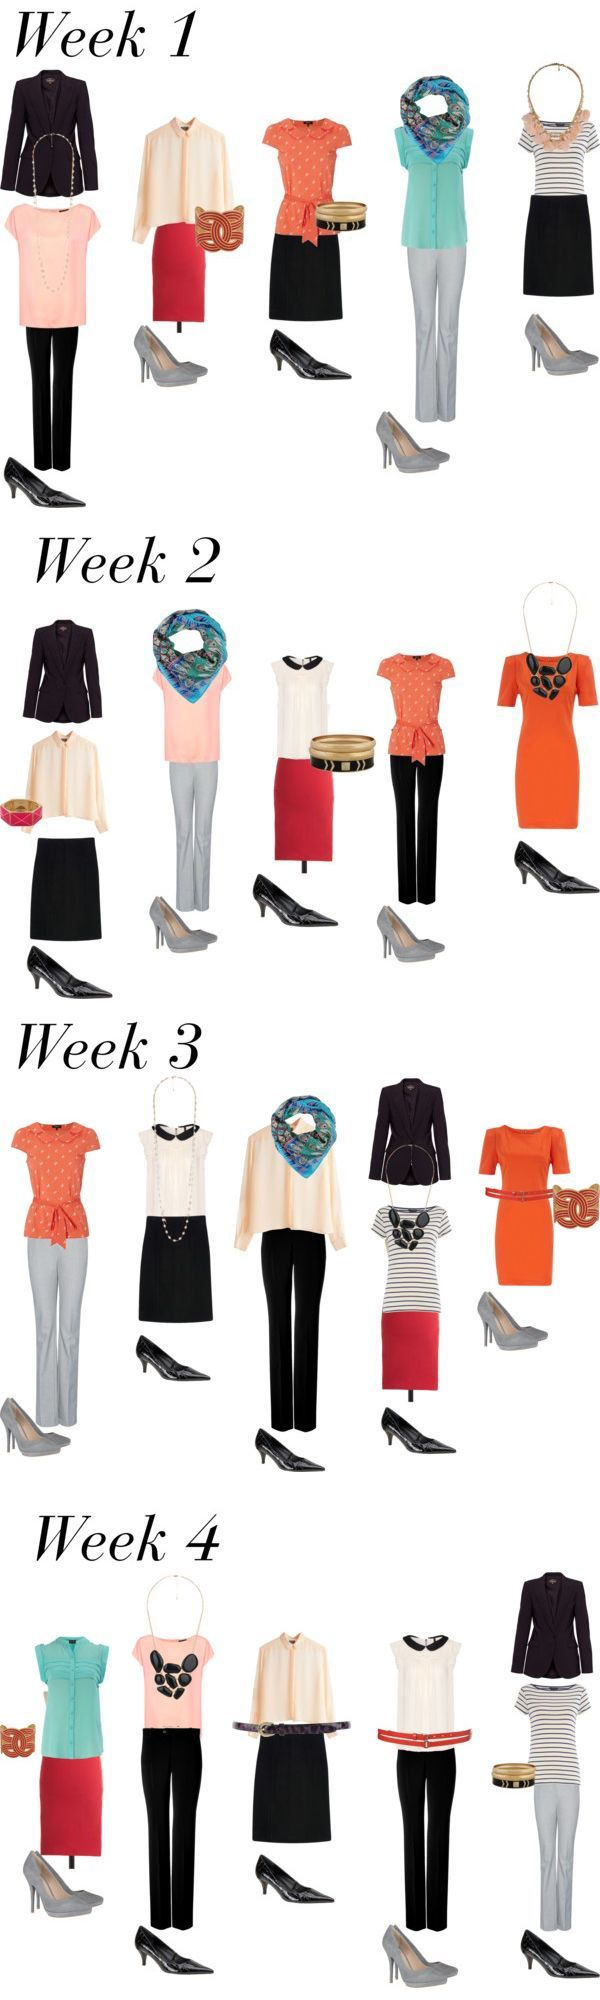 (c) theMuse. Found this while surfing the web, and this is definitely a must see if you're building your professional wardrobe from scratch!